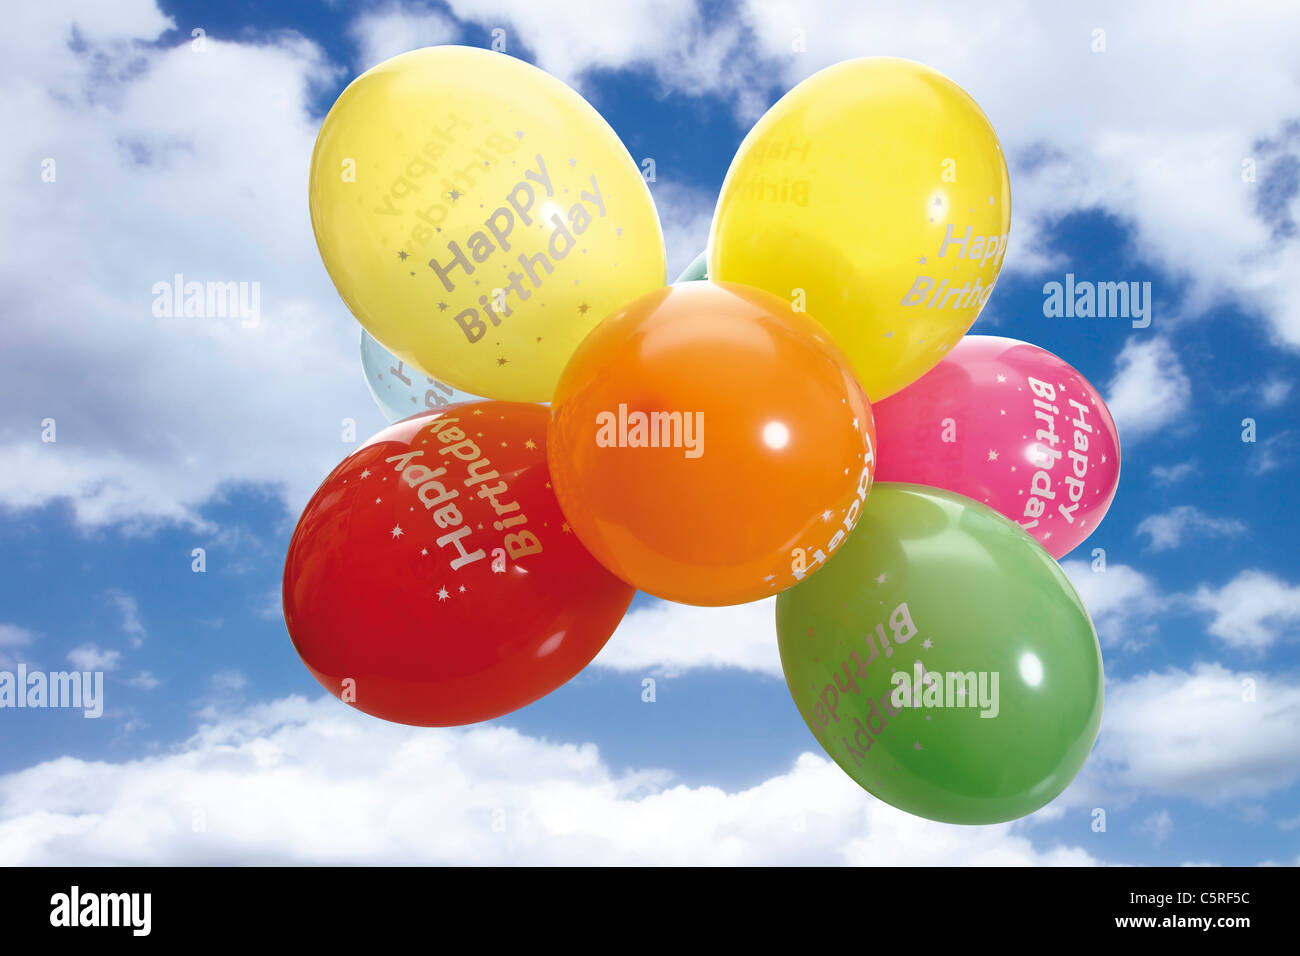 Colourful balloons against cloudy sky - Stock Image